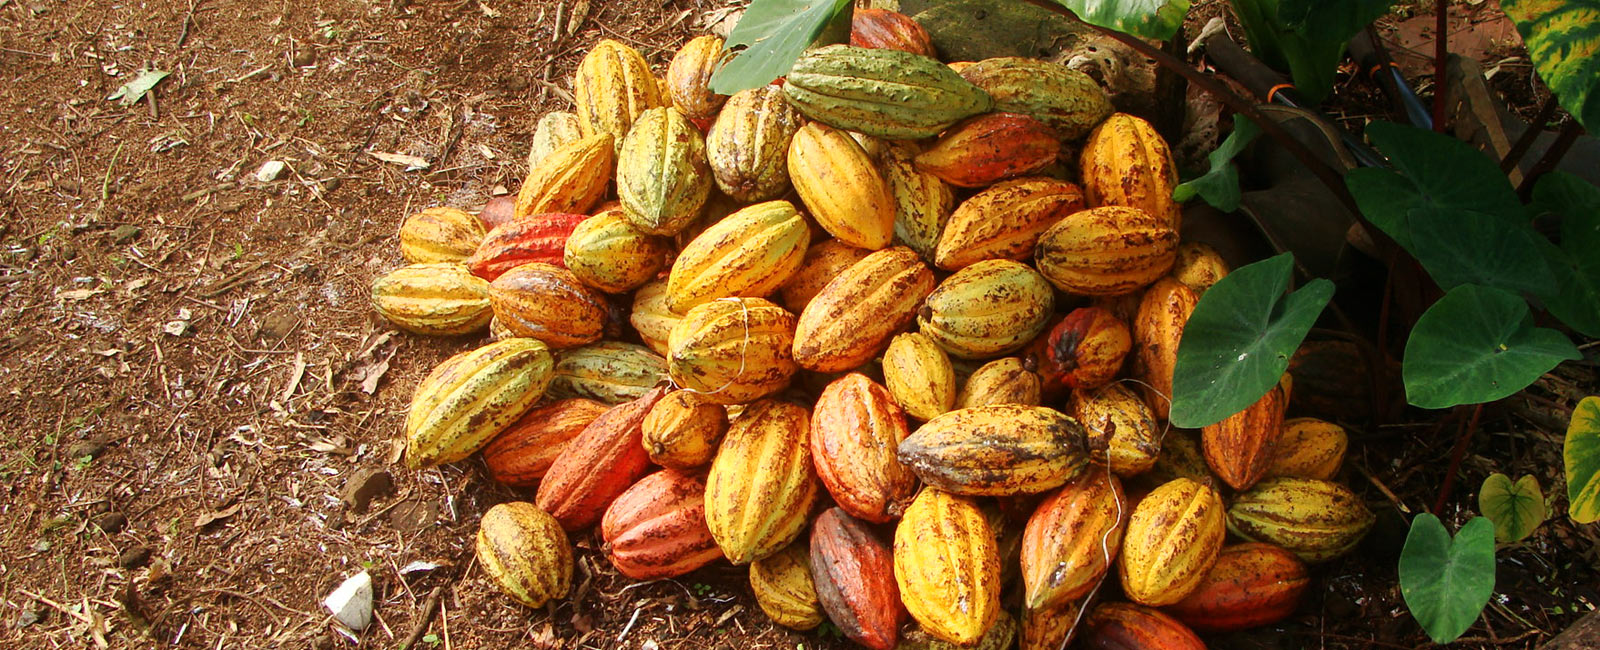 The Bittersweet Life of an Organic Cacao Farmer in Samoa (Part 1)